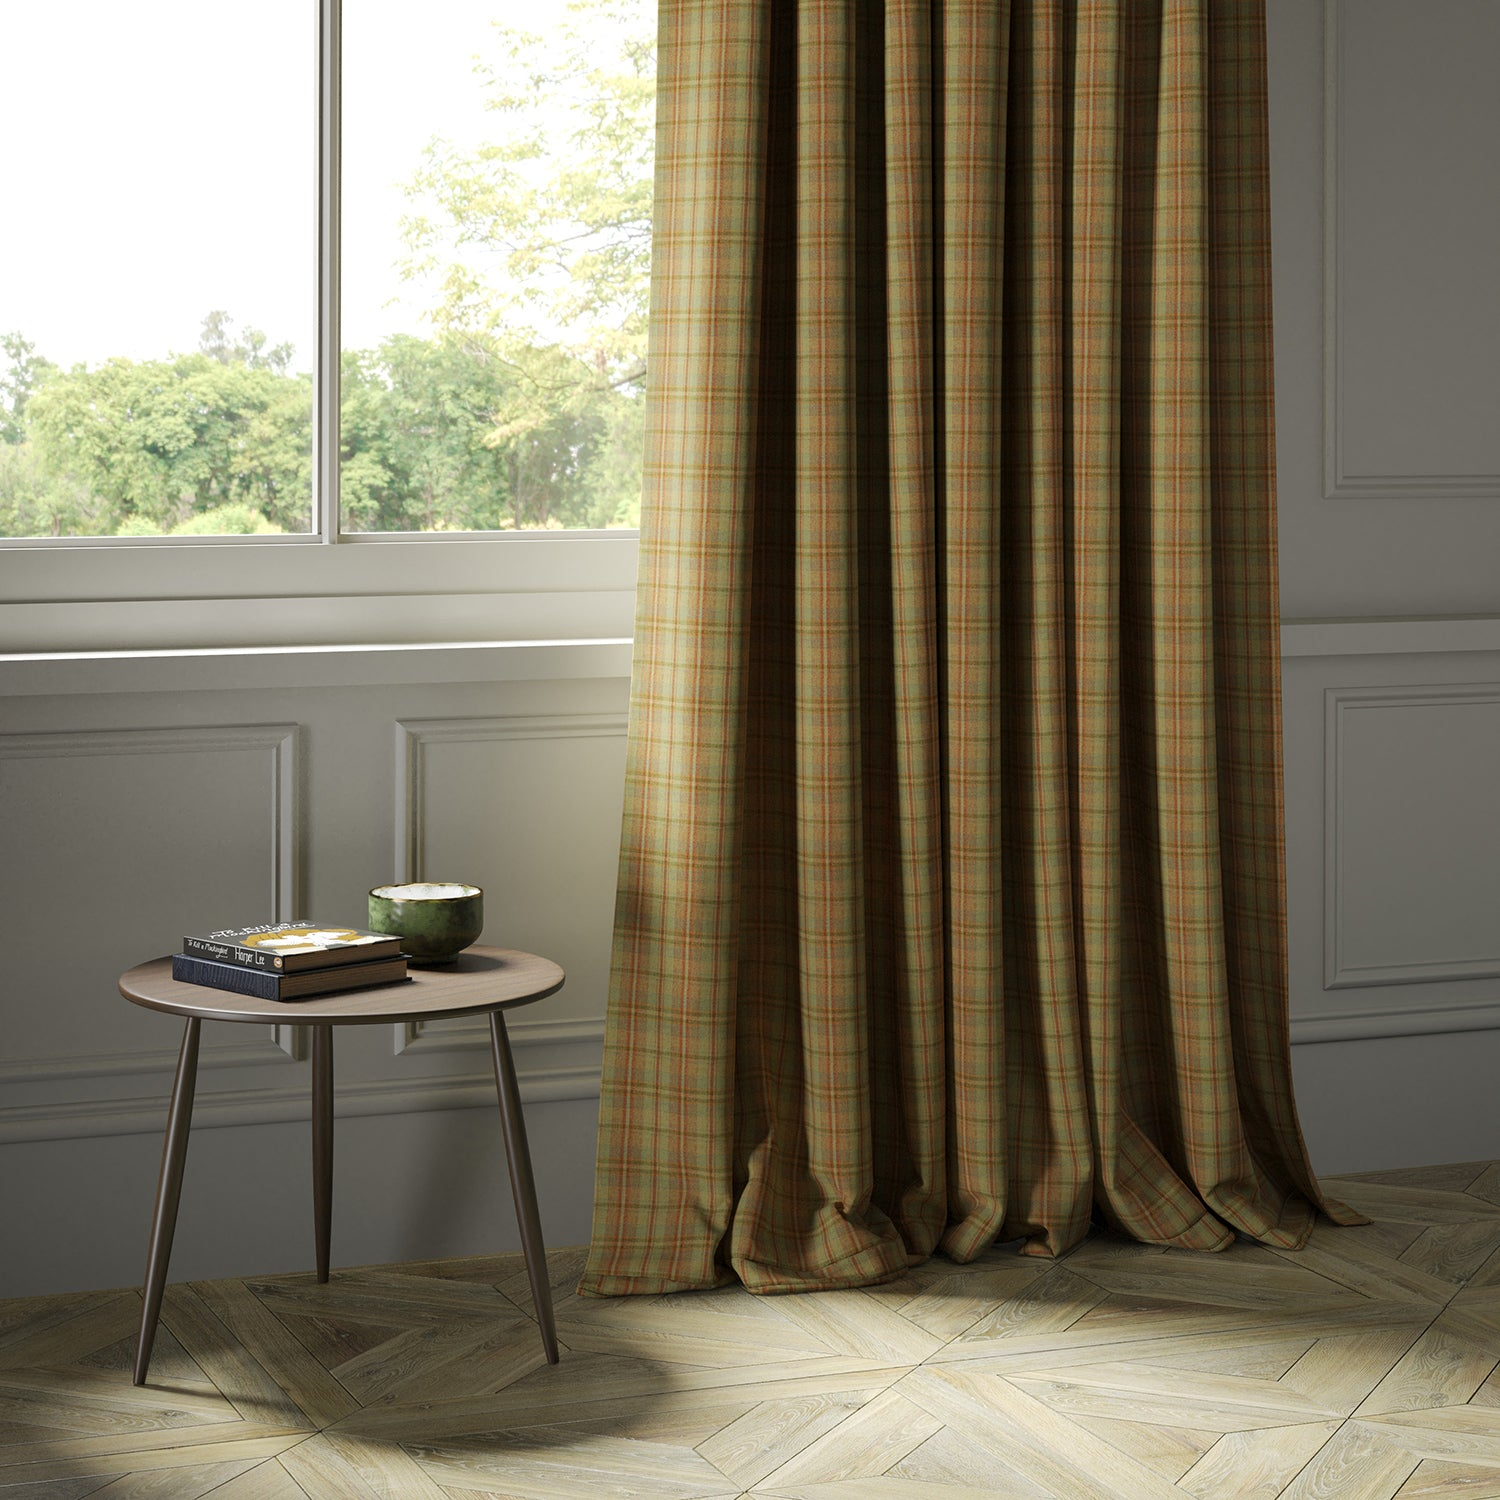 Curtains in a luxury Scottish rust-toned wool tartan fabric